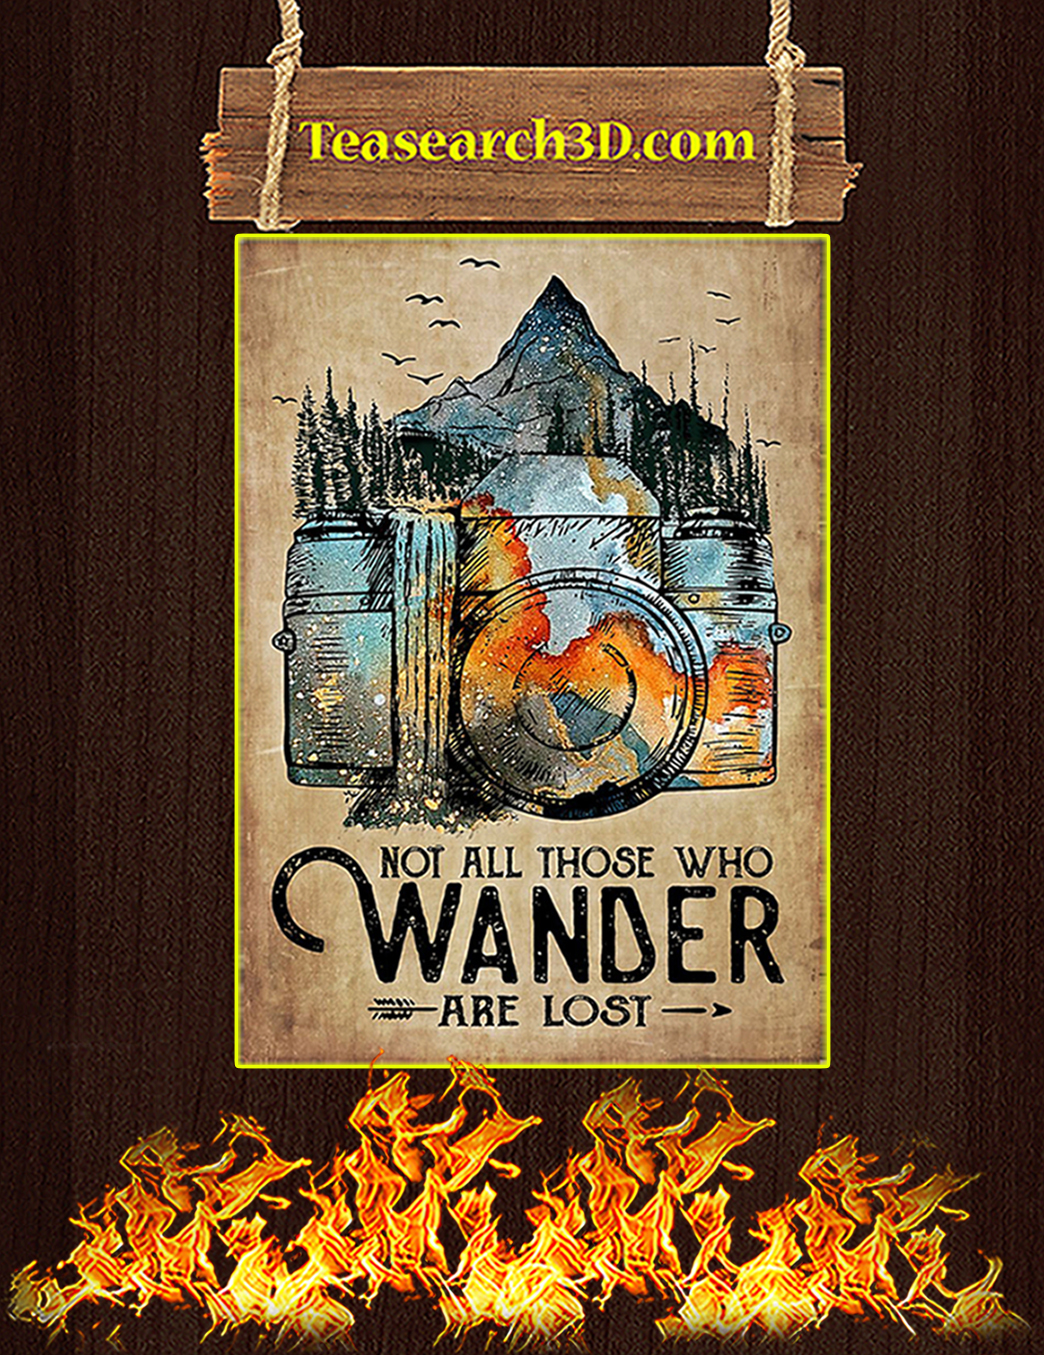 Photographer not all those who wander are lost poster A1